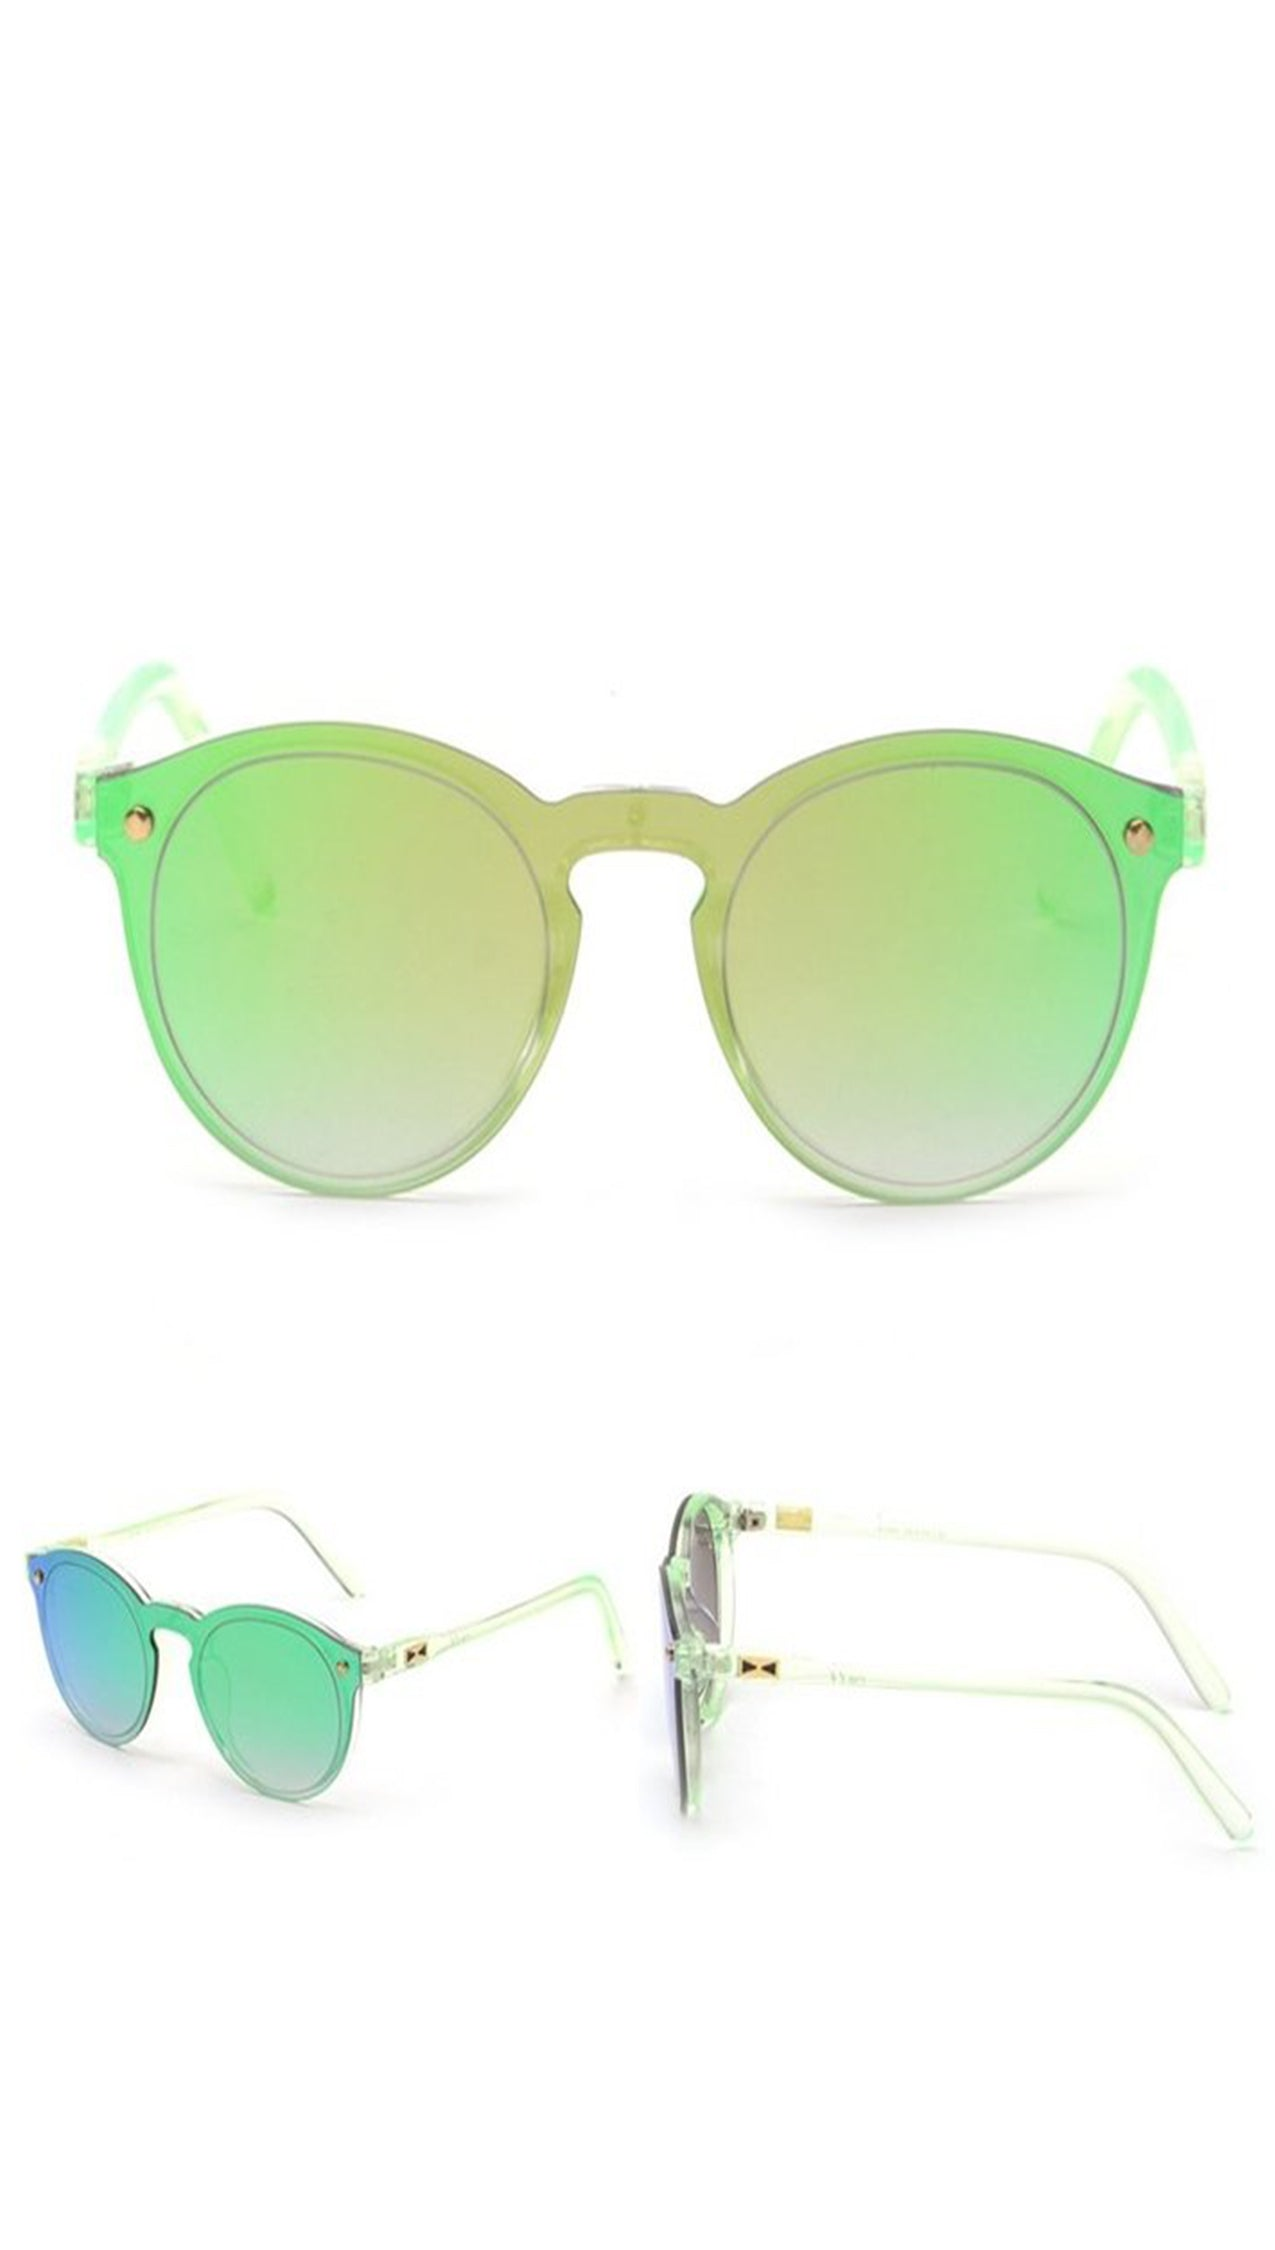 Fashion Shades Mirror Reflective Single Lens SUnglasses Green